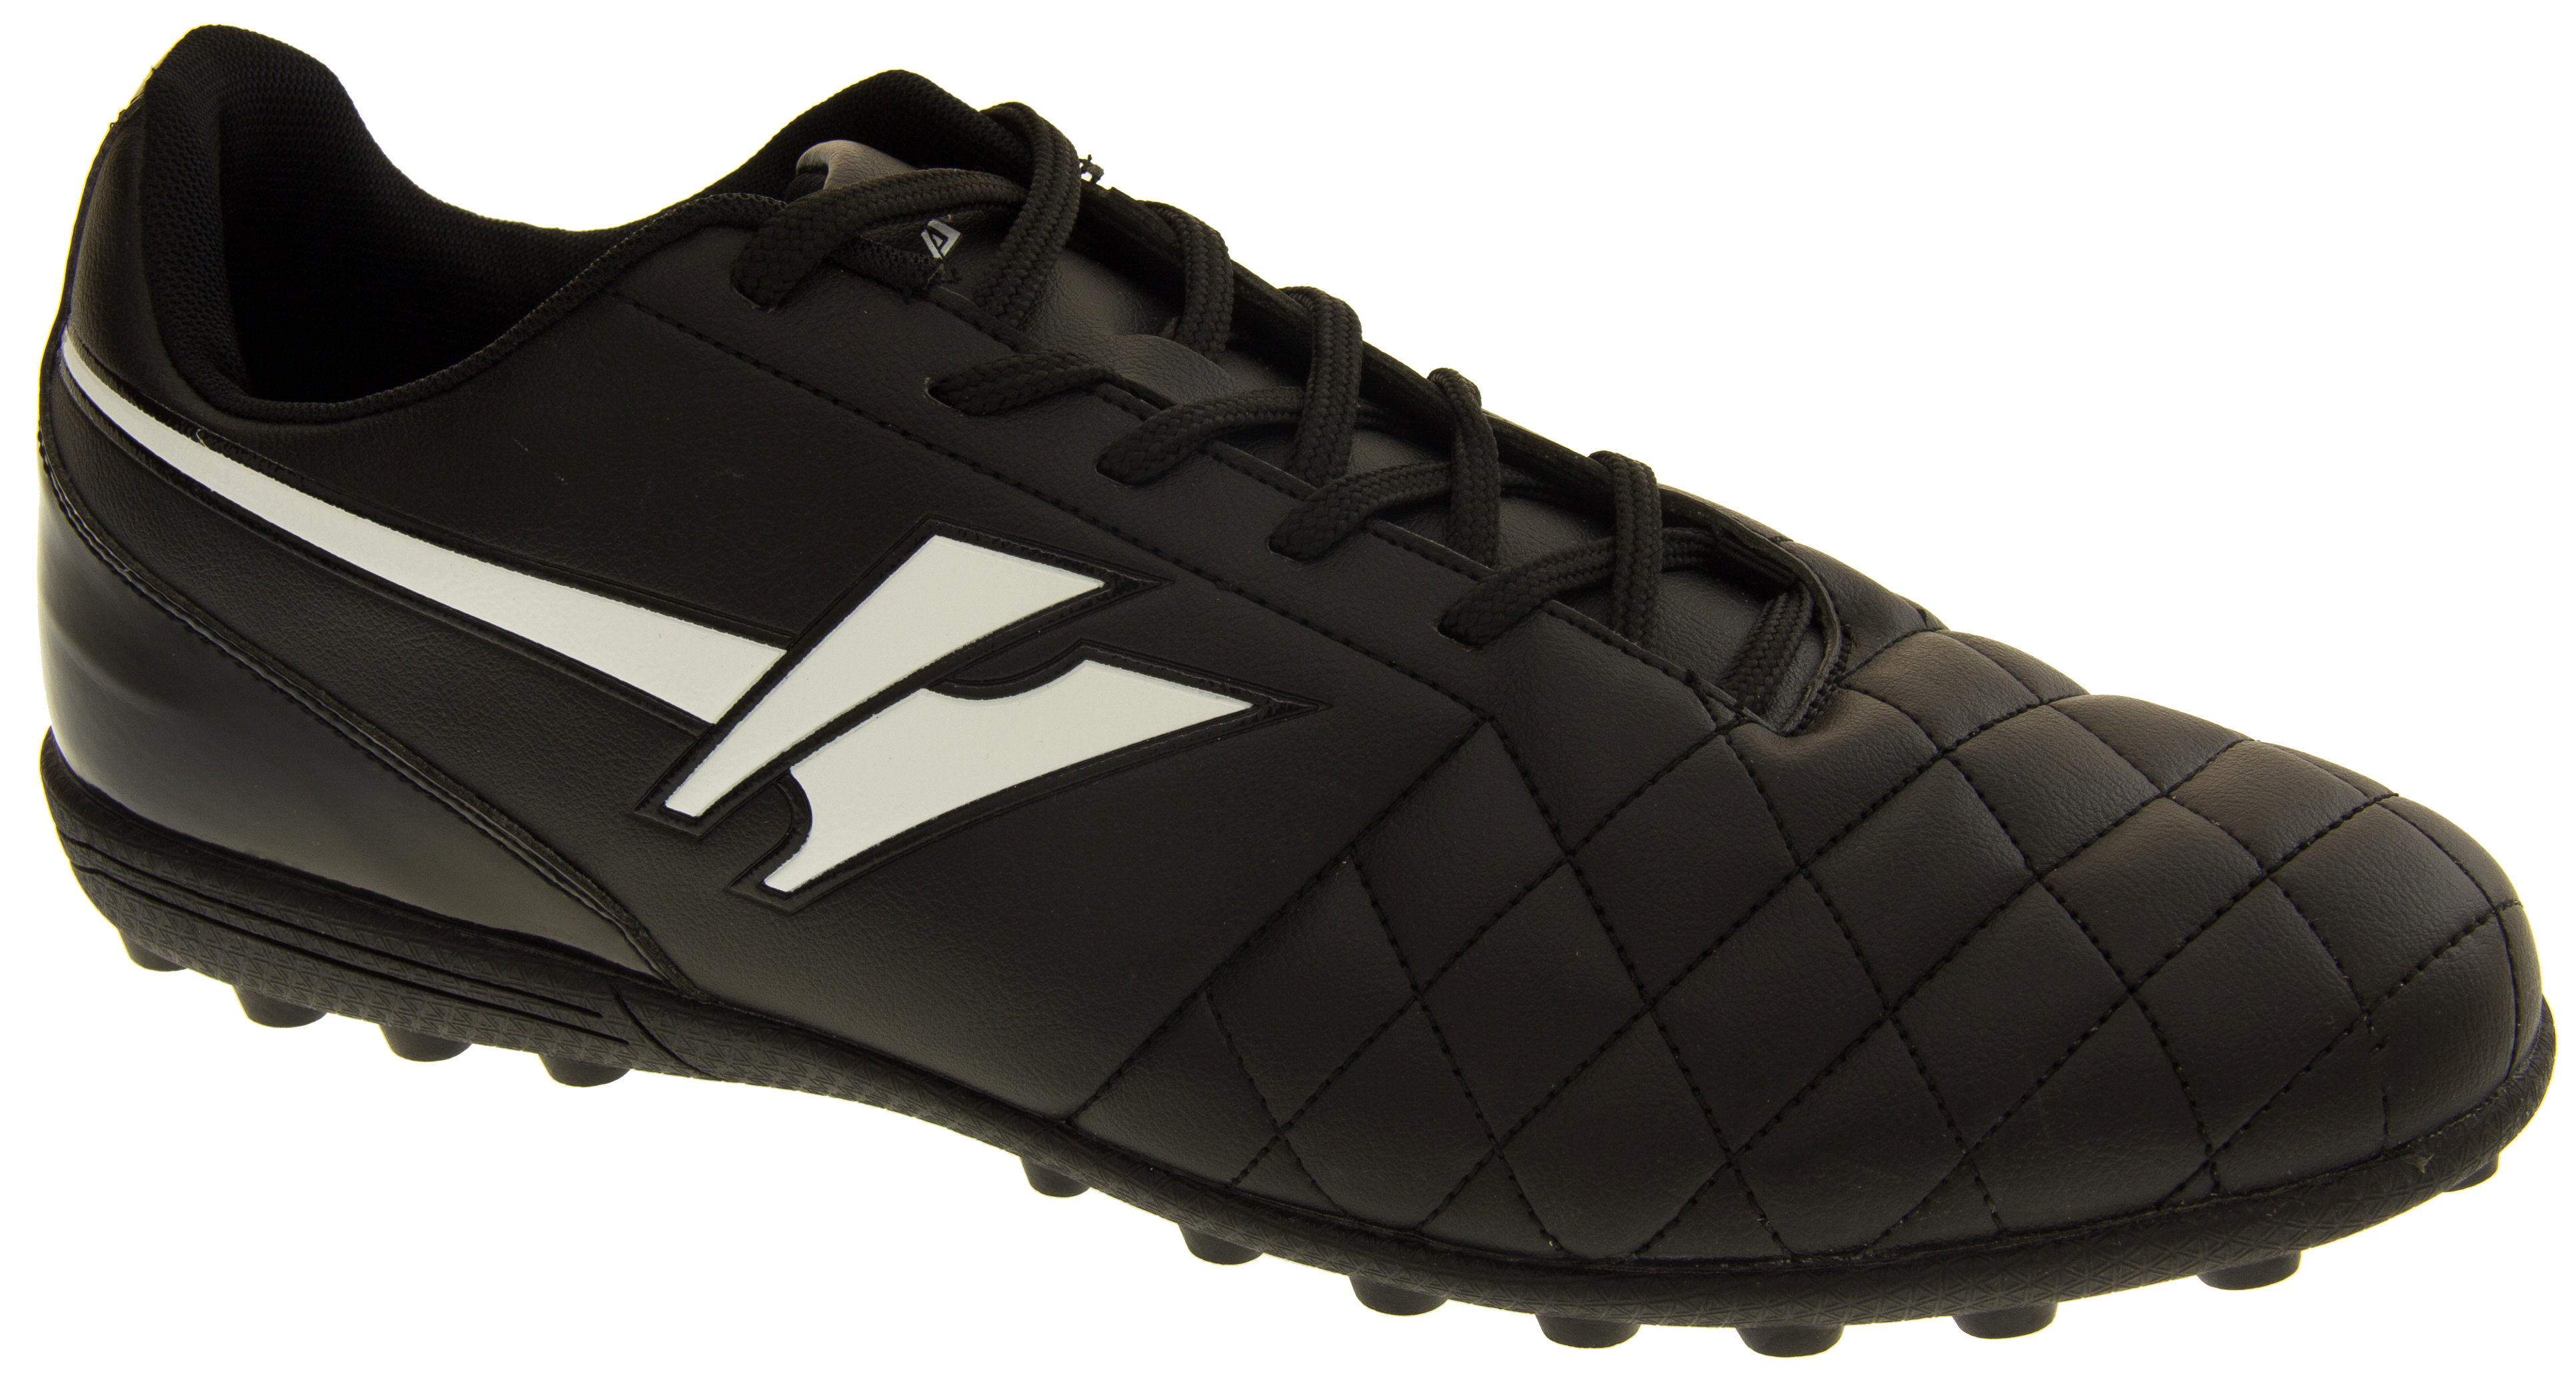 b9ebcf542389 Mens GOLA Astroturf Football Boots Training Shoes Astro Sport Trainers Size  9 11